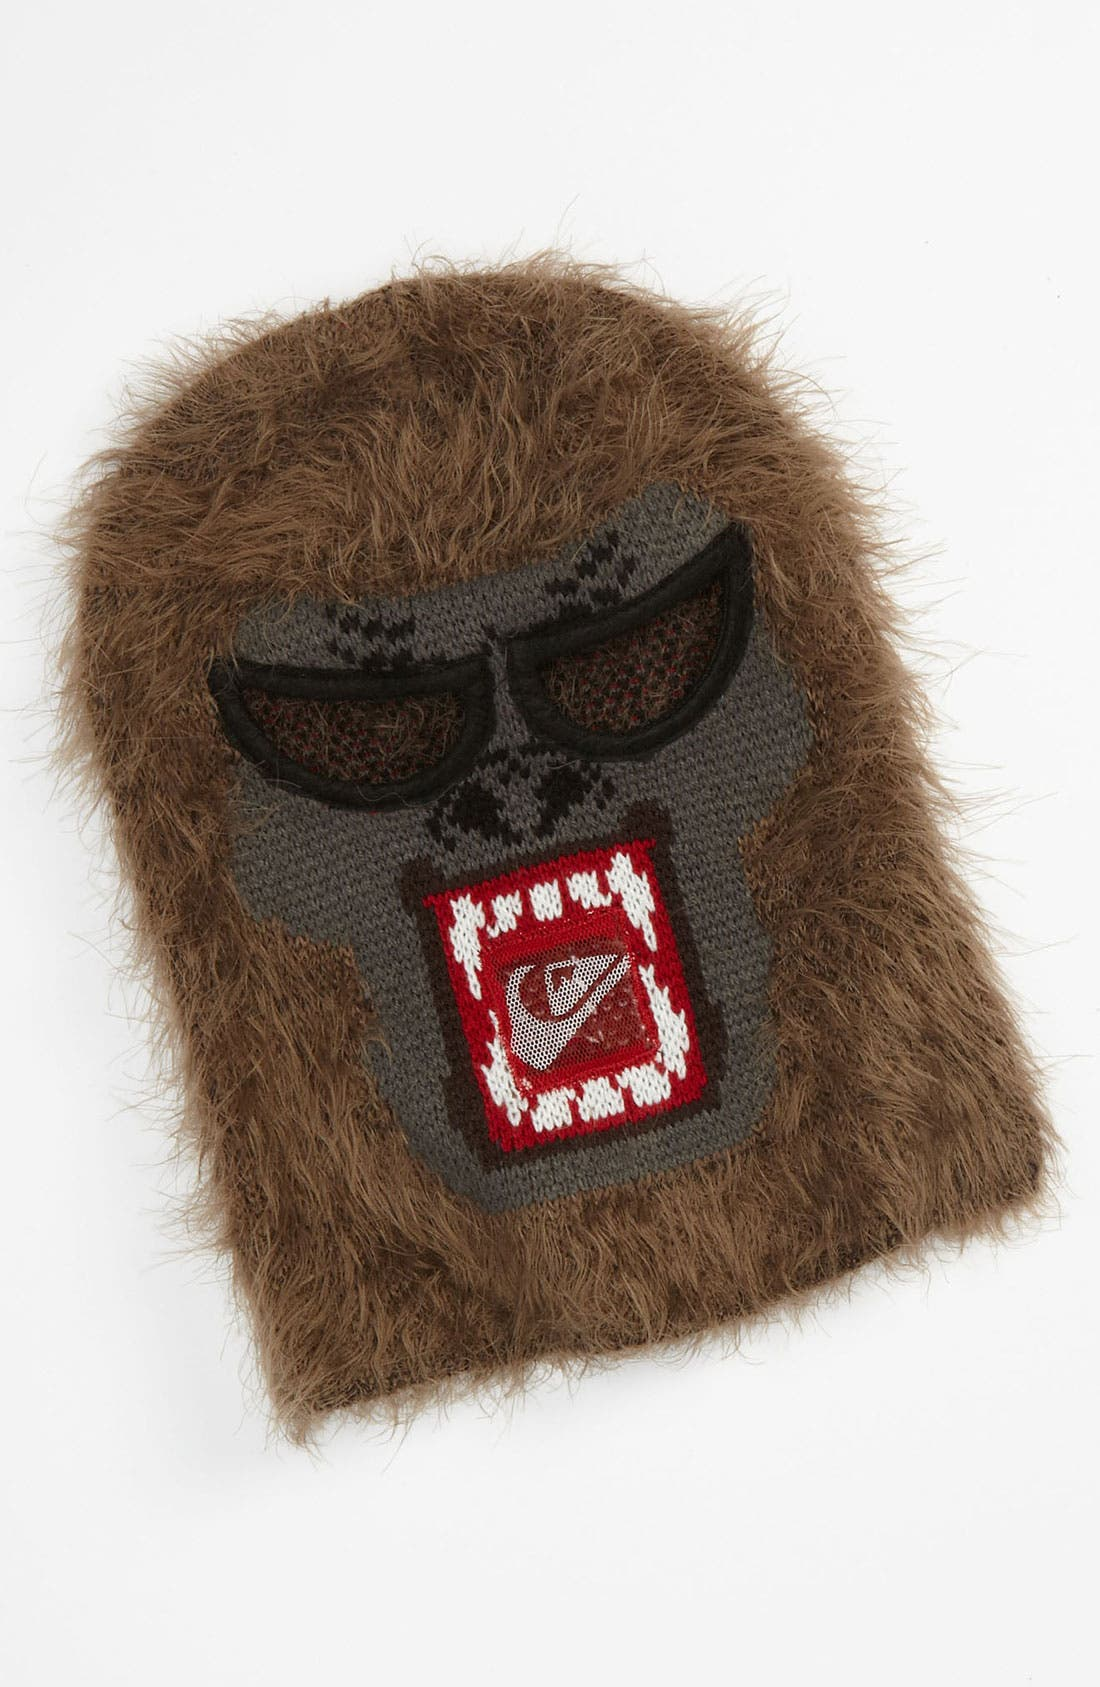 Alternate Image 1 Selected - Quiksilver 'Gettin' Bananas' Monkey Mask Hat (Big Boys)